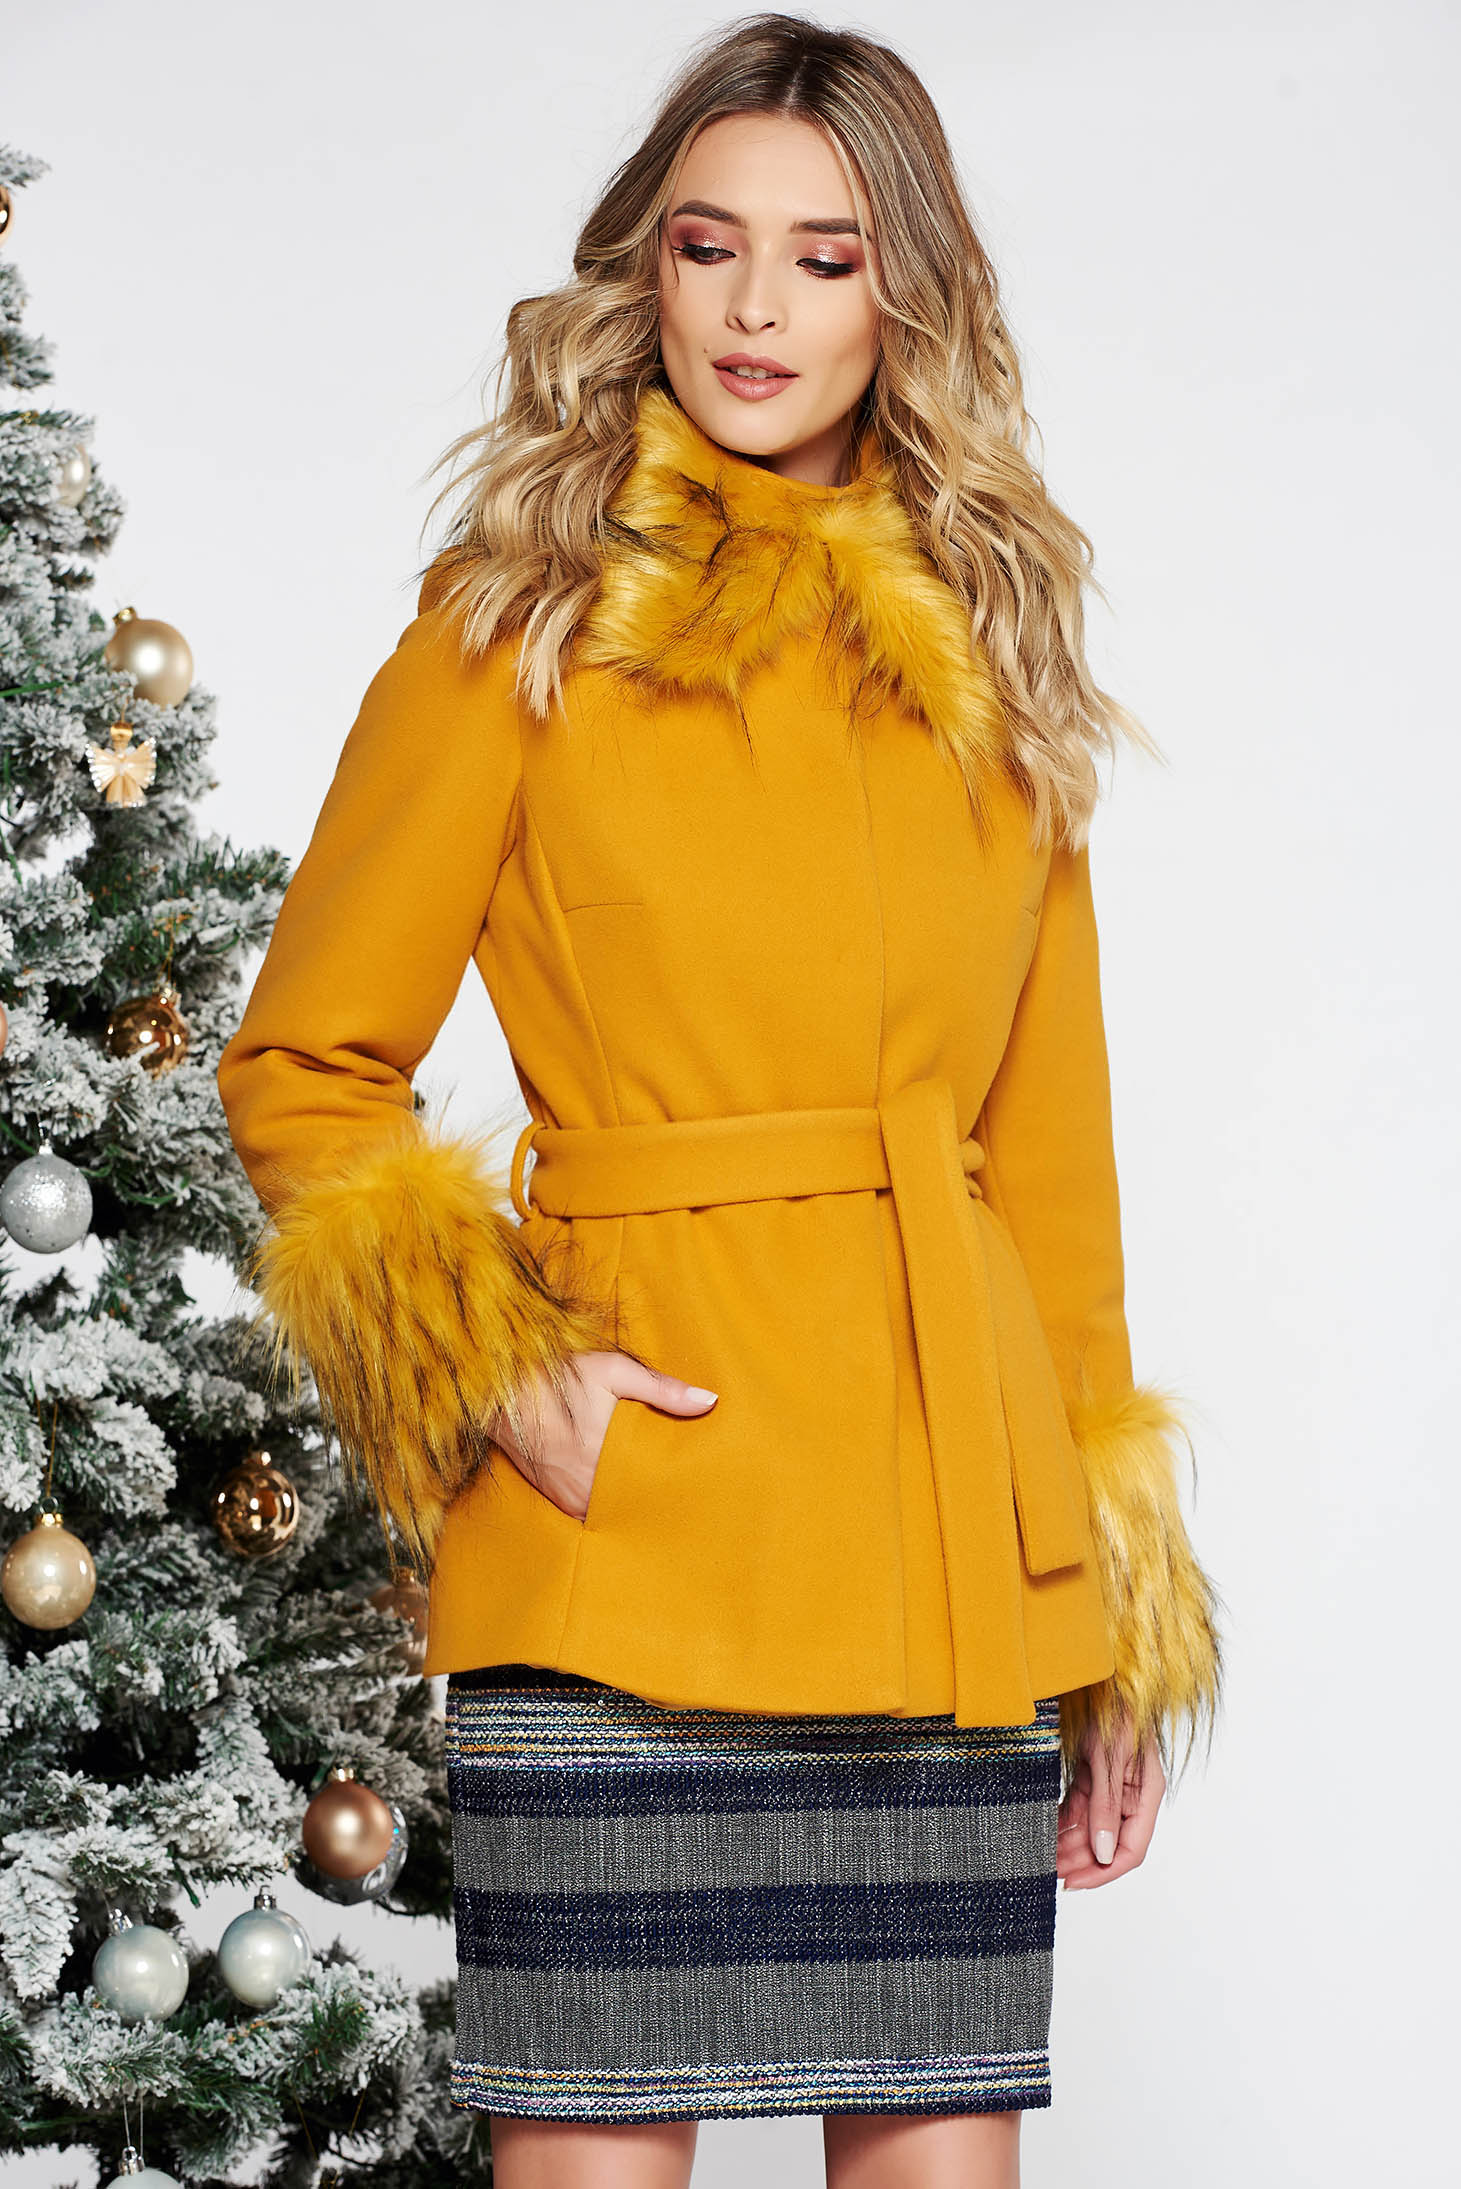 LaDonna mustard elegant short cut flared wool coat with inside lining accessorized with tied waistband